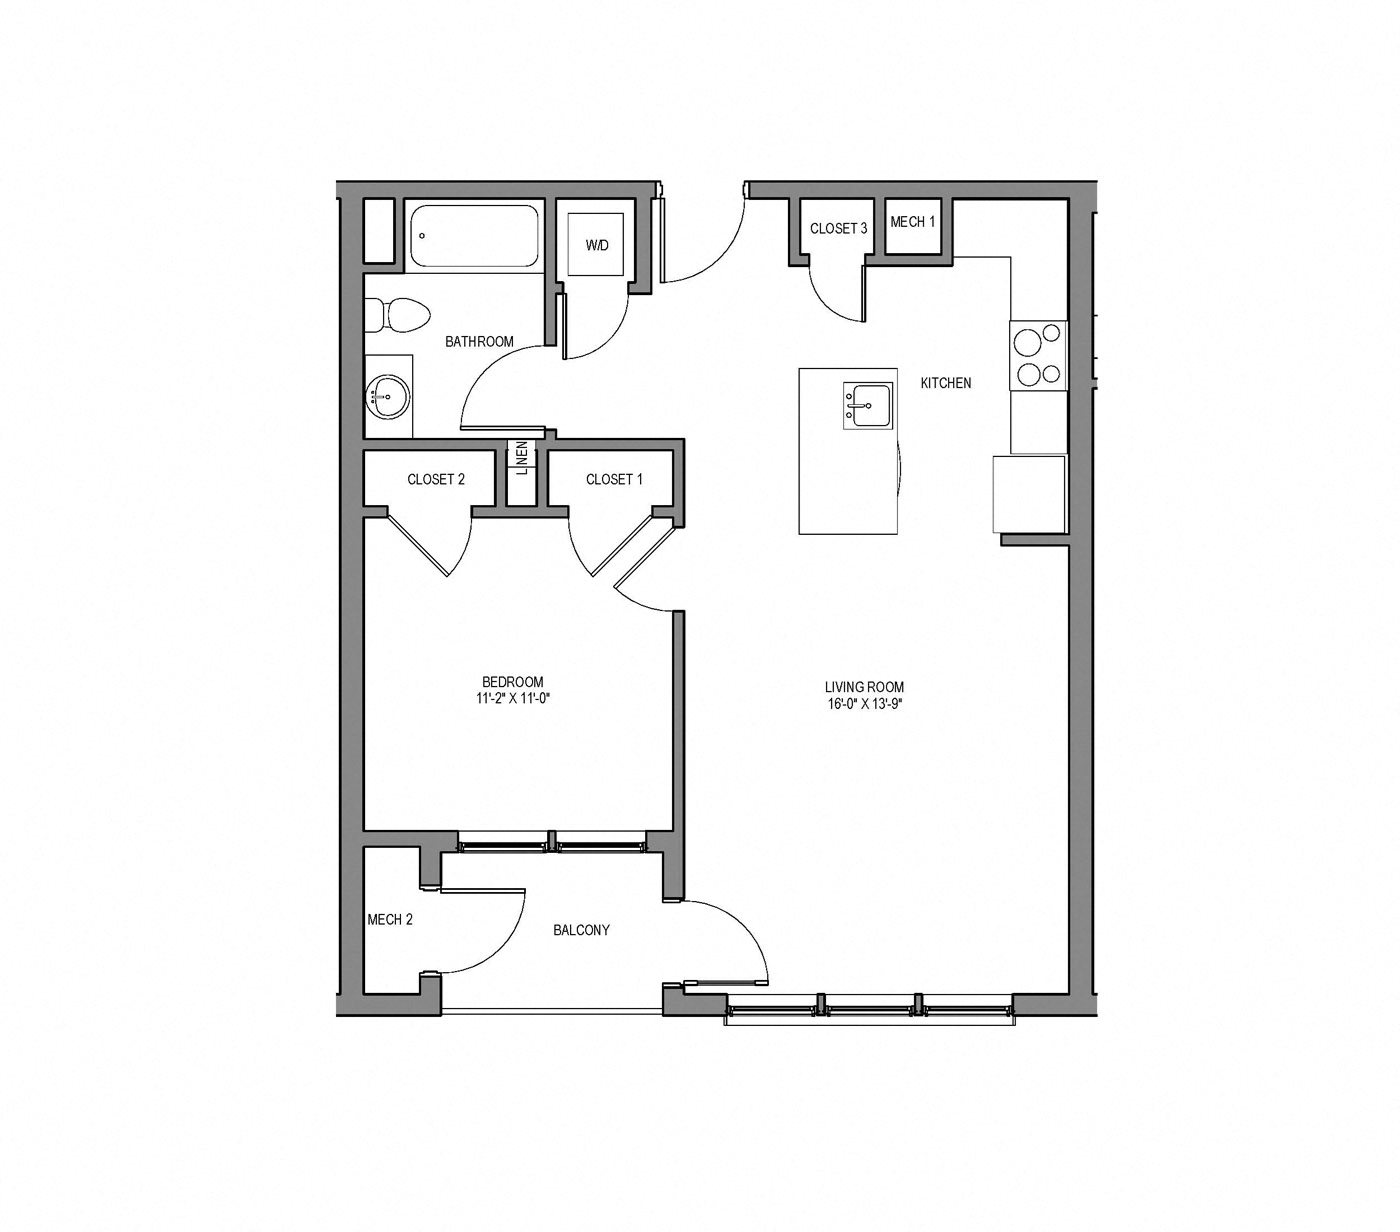 floor plans of metromark in boston ma